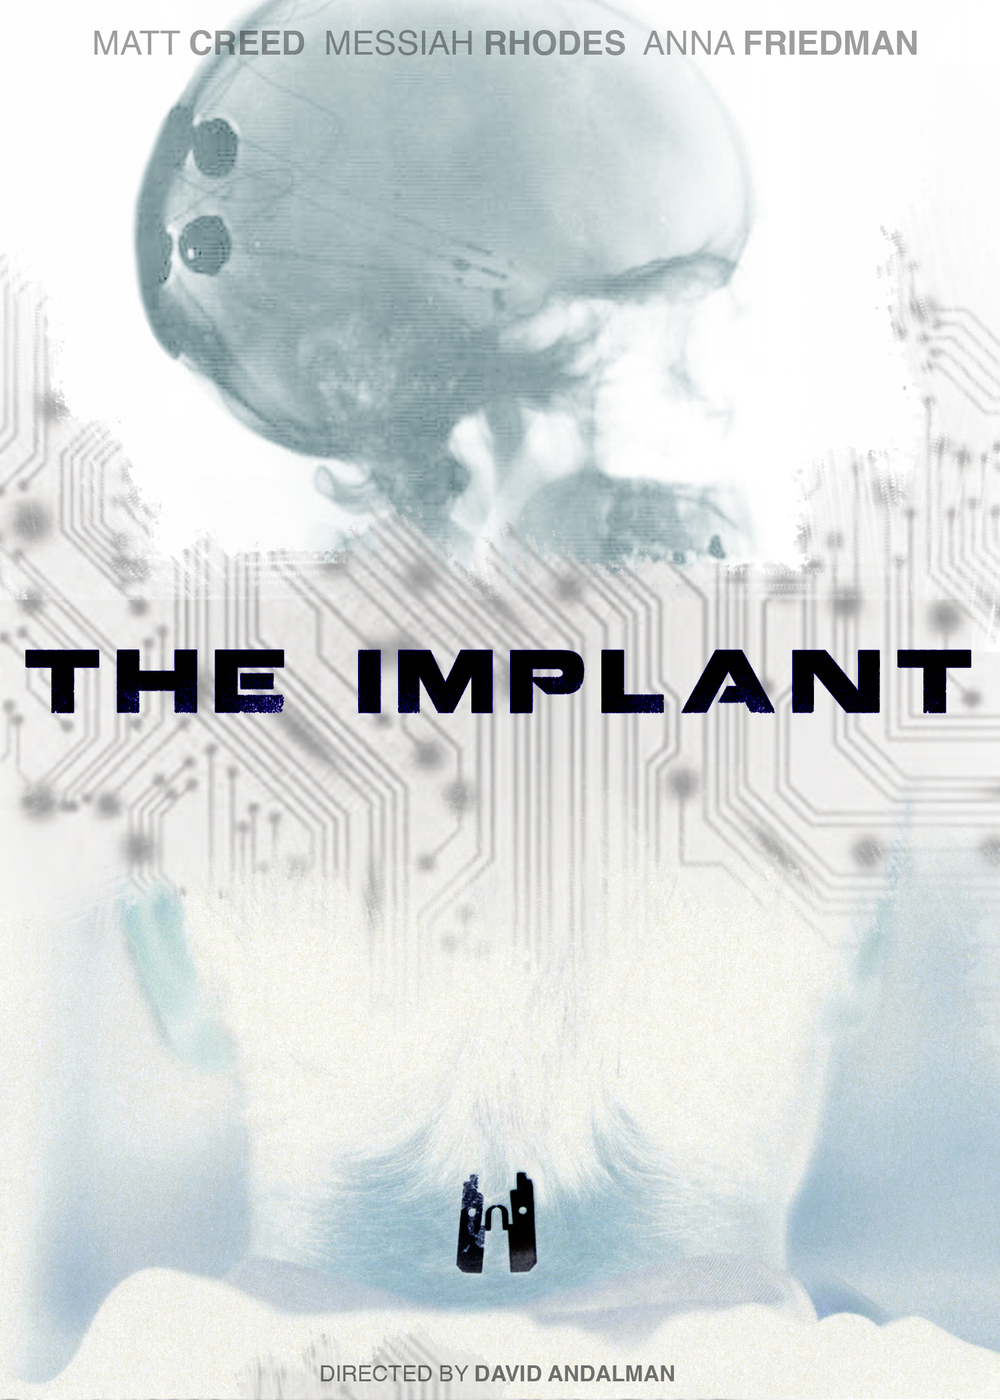 THE IMPLANT poster5.jpg